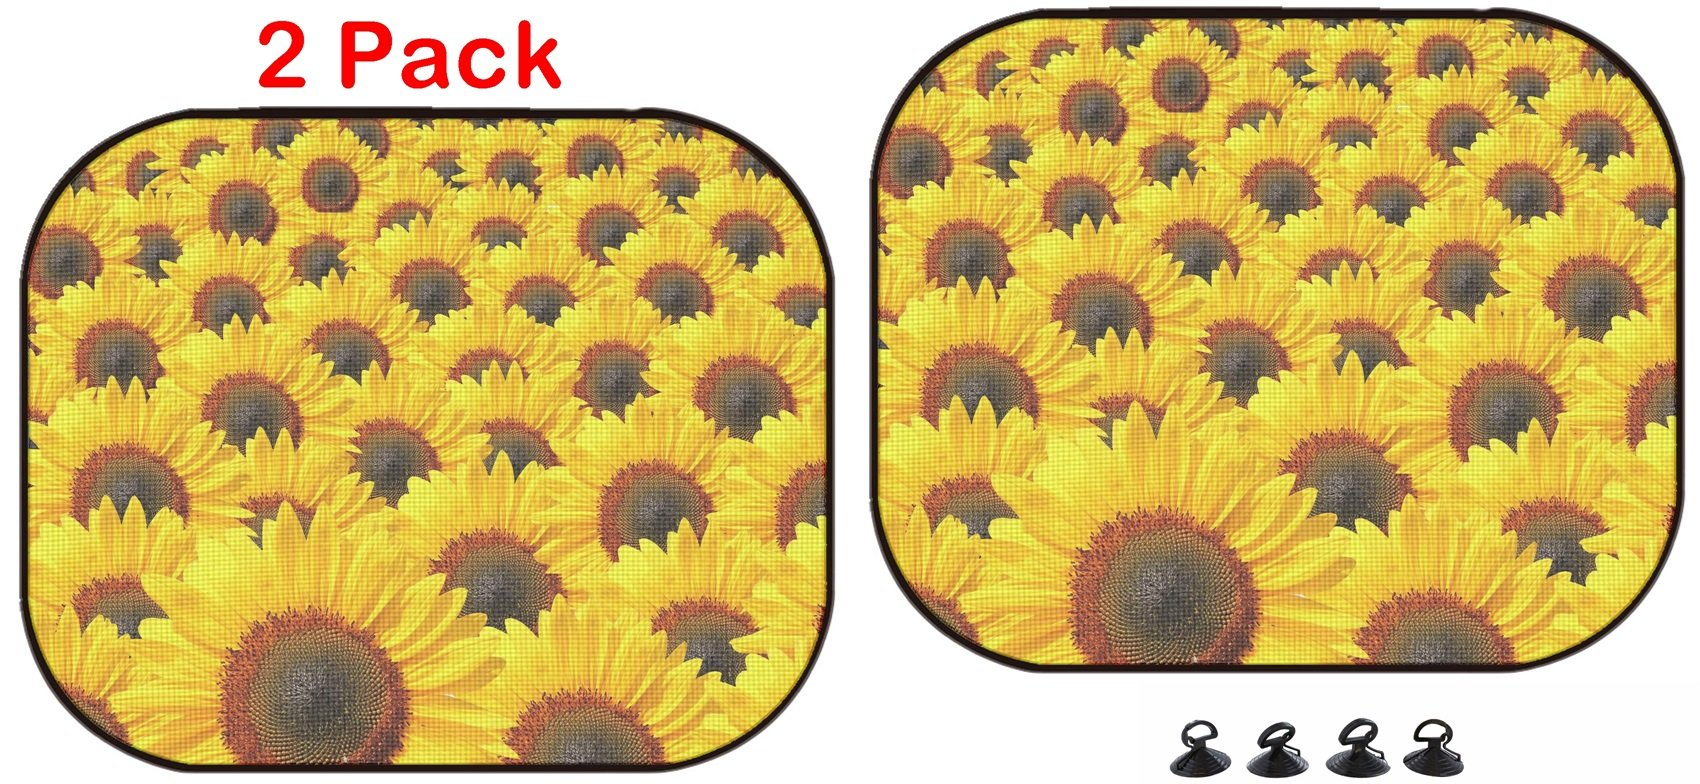 Luxlady Car Sun Shade Protector Block Damaging UV Rays Sunlight Heat for All Vehicles, 2 Pack Background of Isolated Bright Sunflowers Image ID 25482579 by Luxlady